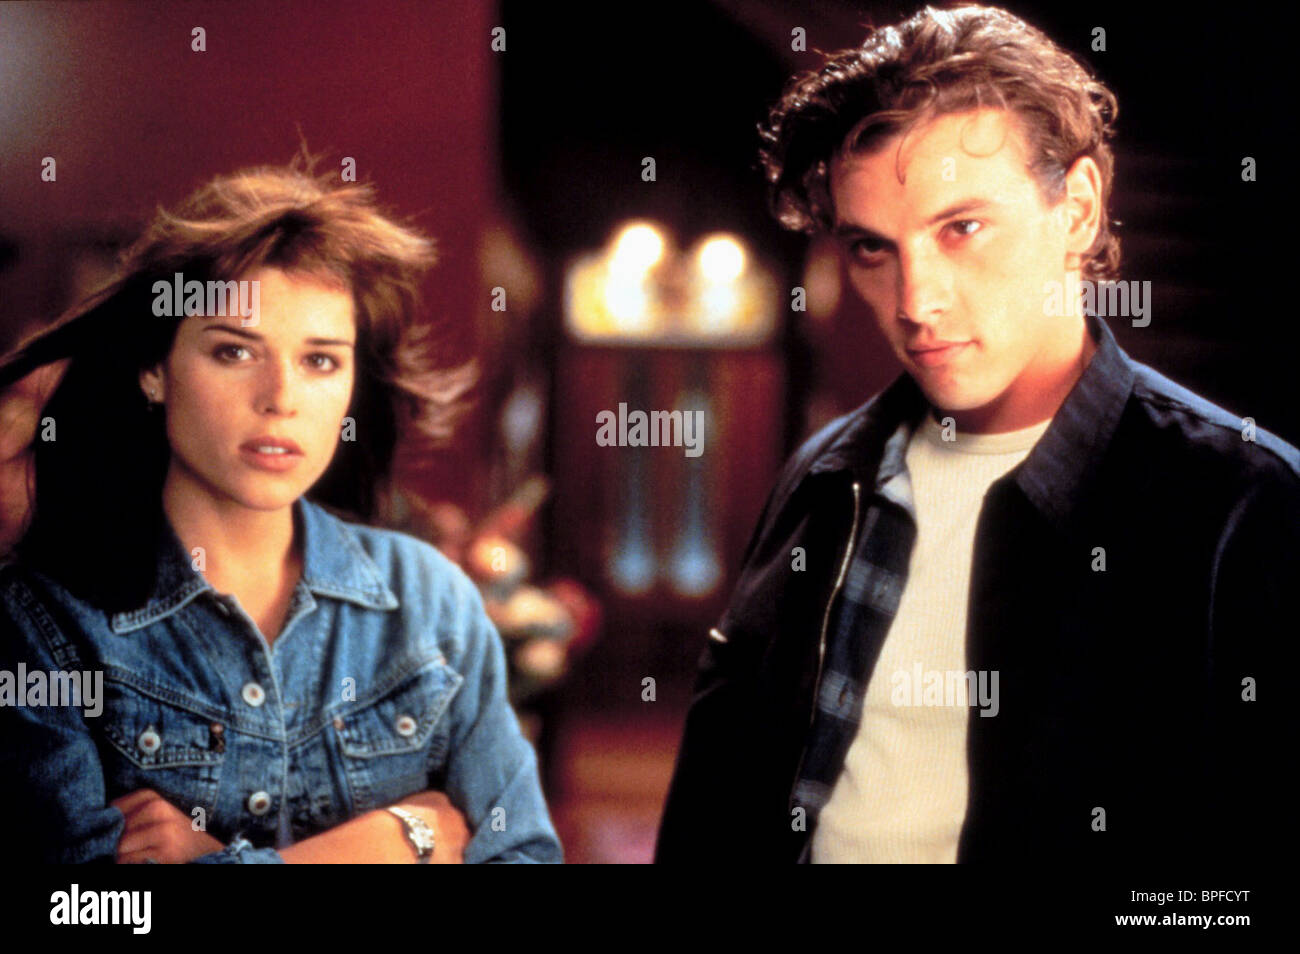 NEVE CAMPBELL & SKEET ULRICH SCREAM (1996 Stock Photo - Alamy